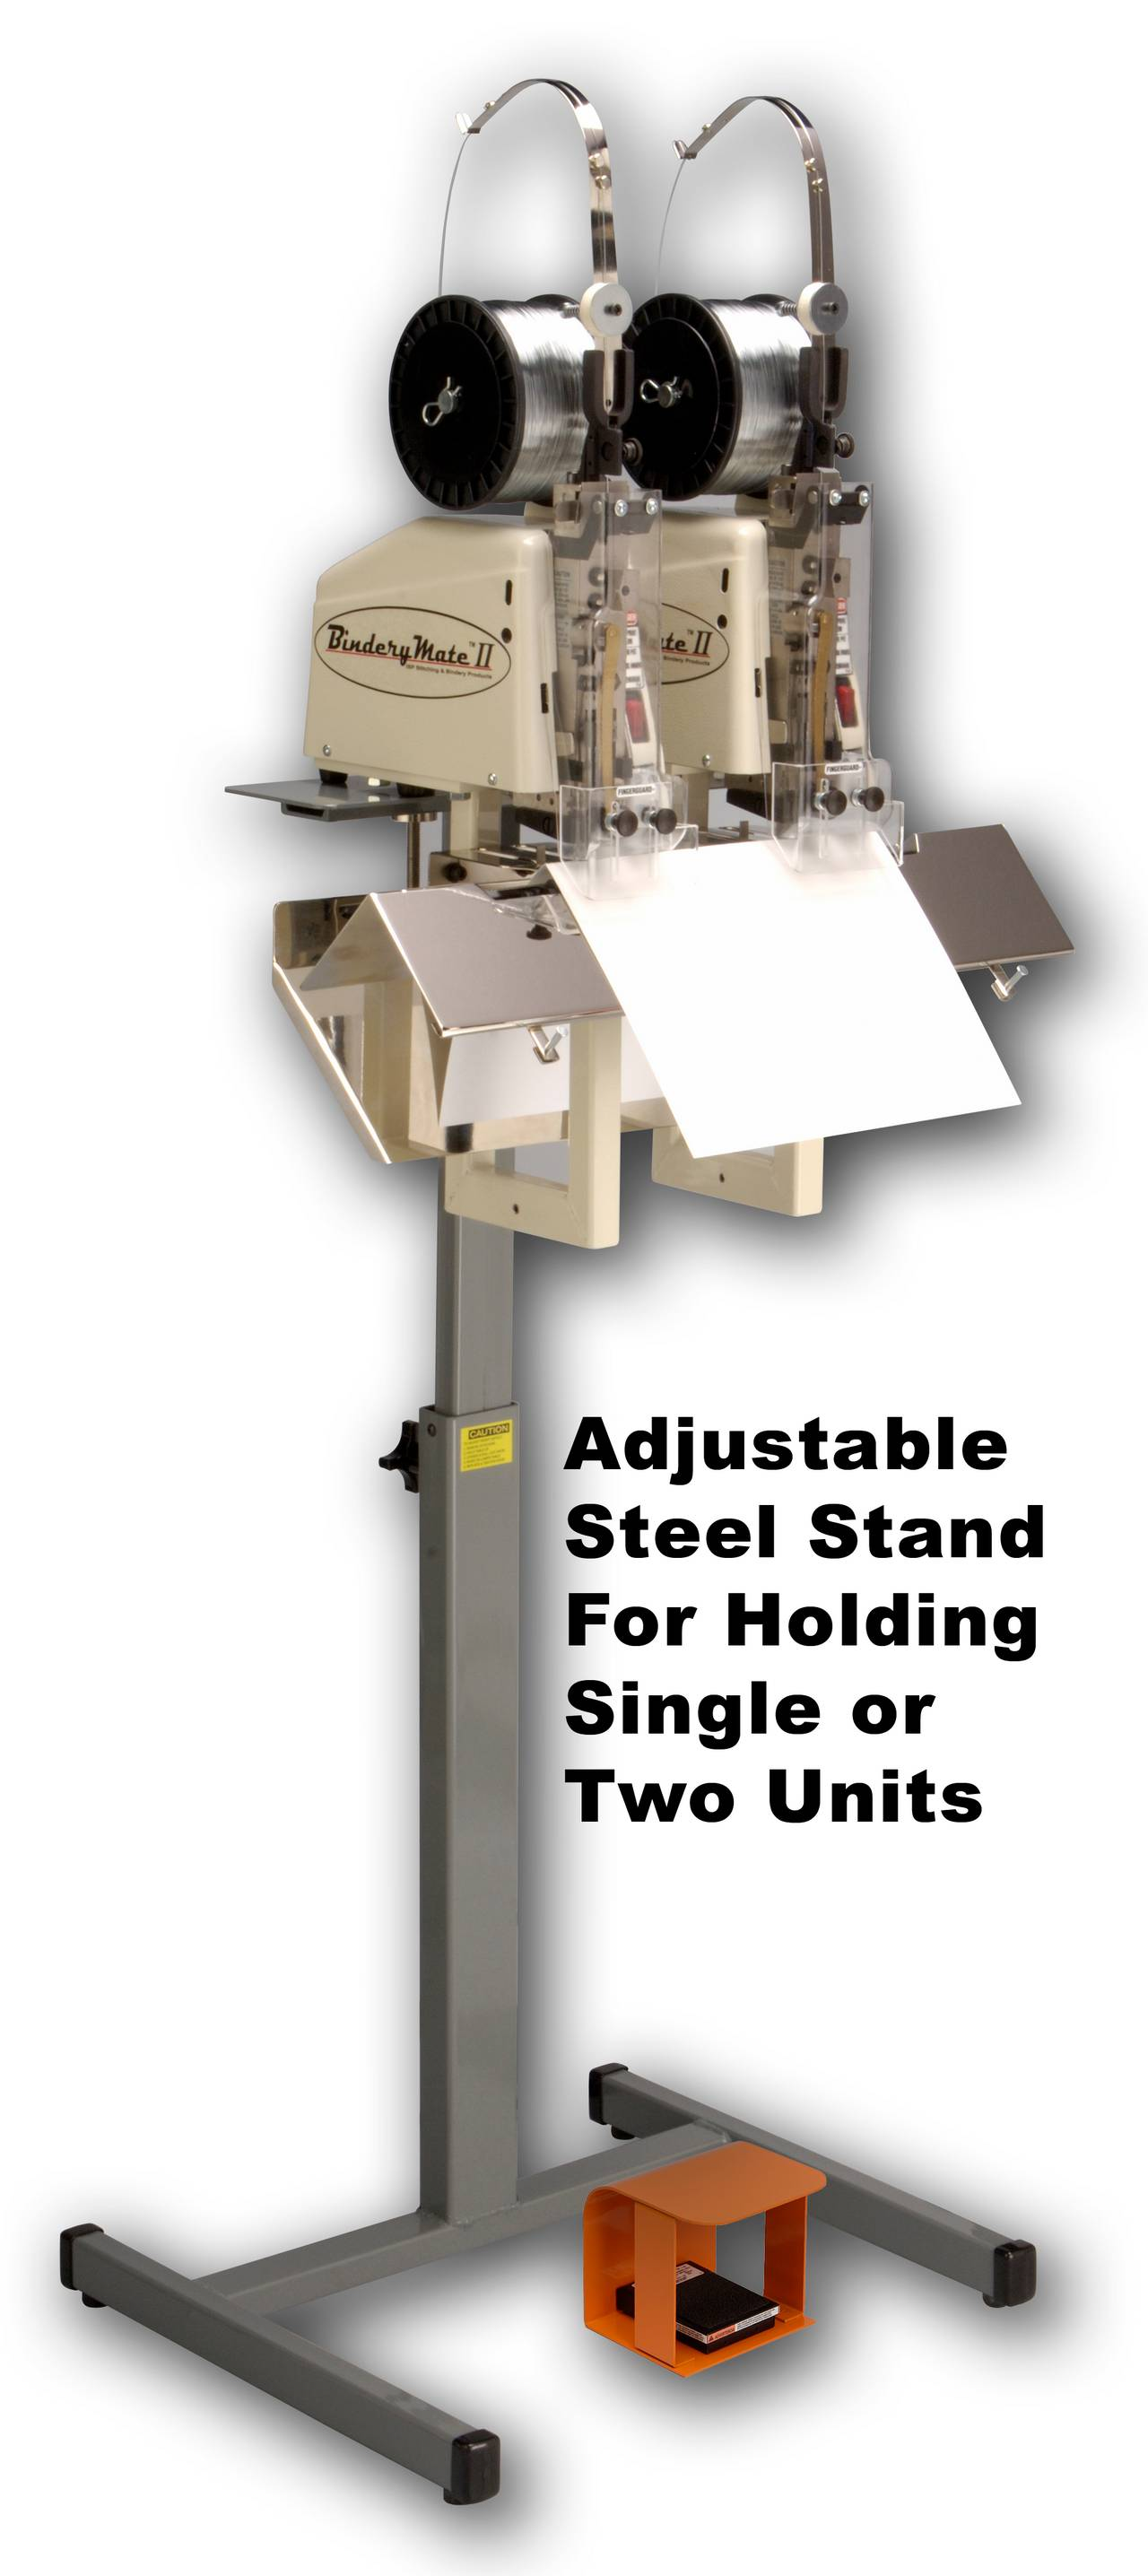 BINDERYMATE II STAND For Single or Dual Unit Use